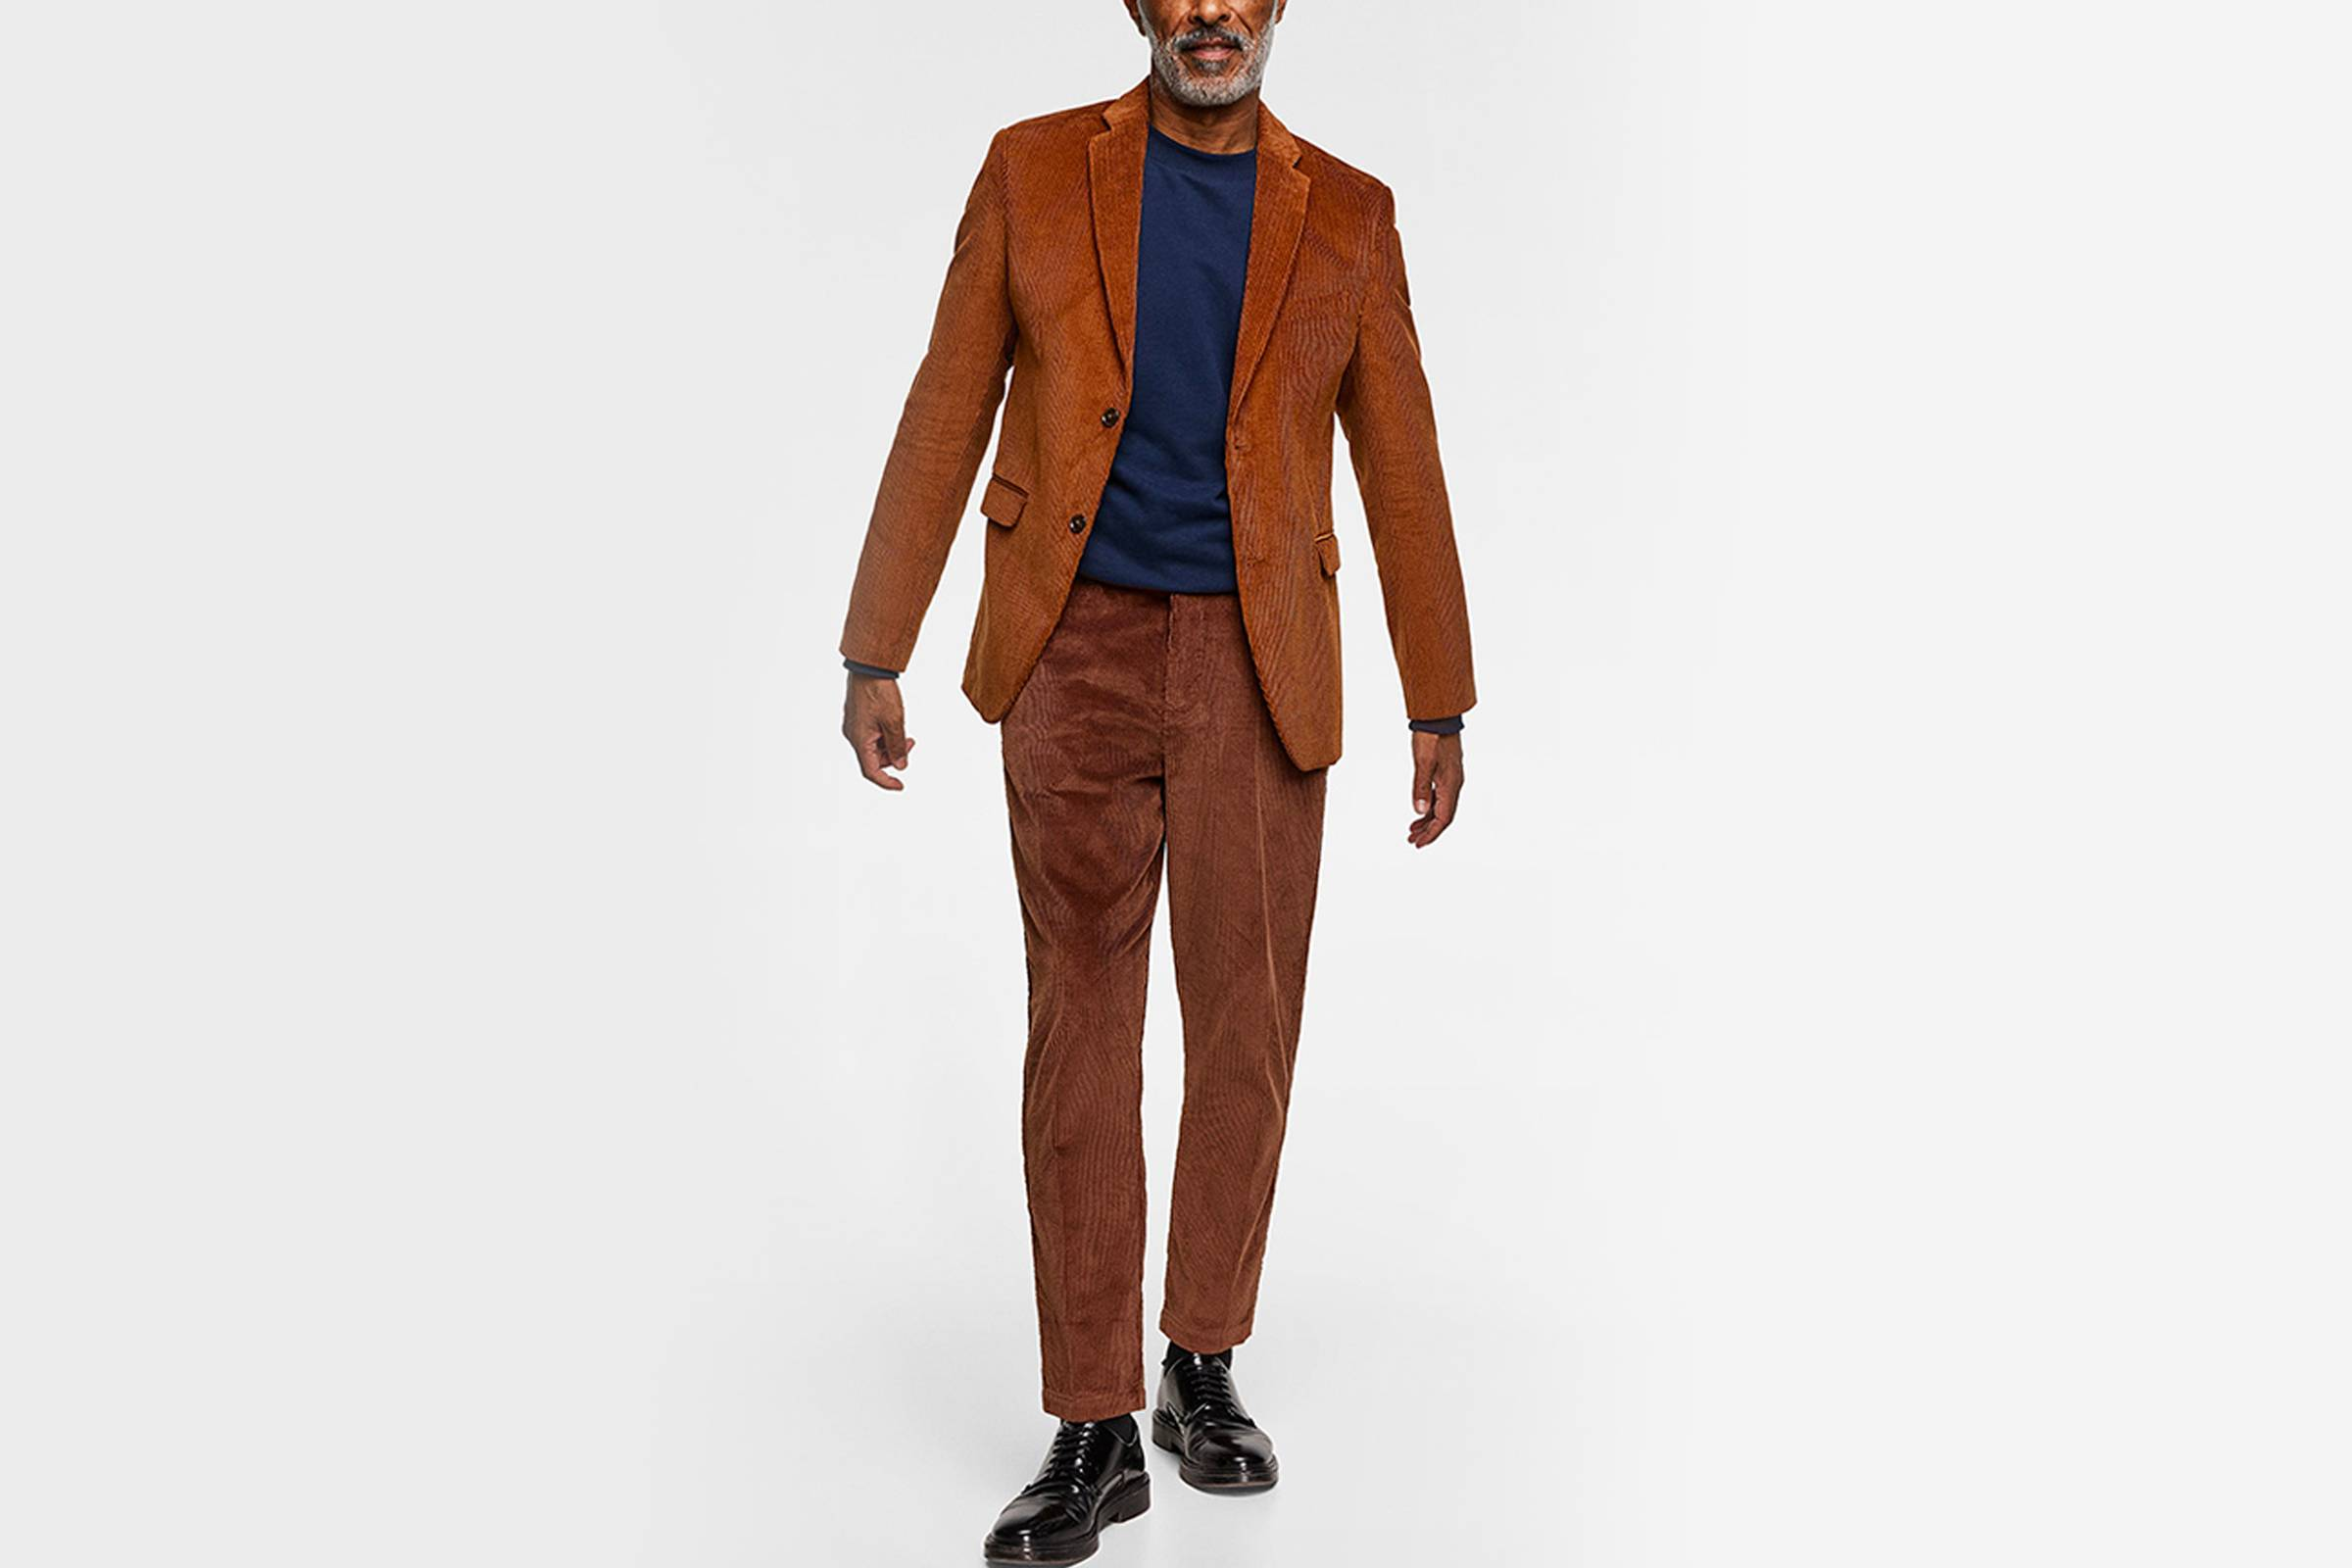 Types of Suits: Casual or Party Suit - Corduroy, Cotton, Velvet